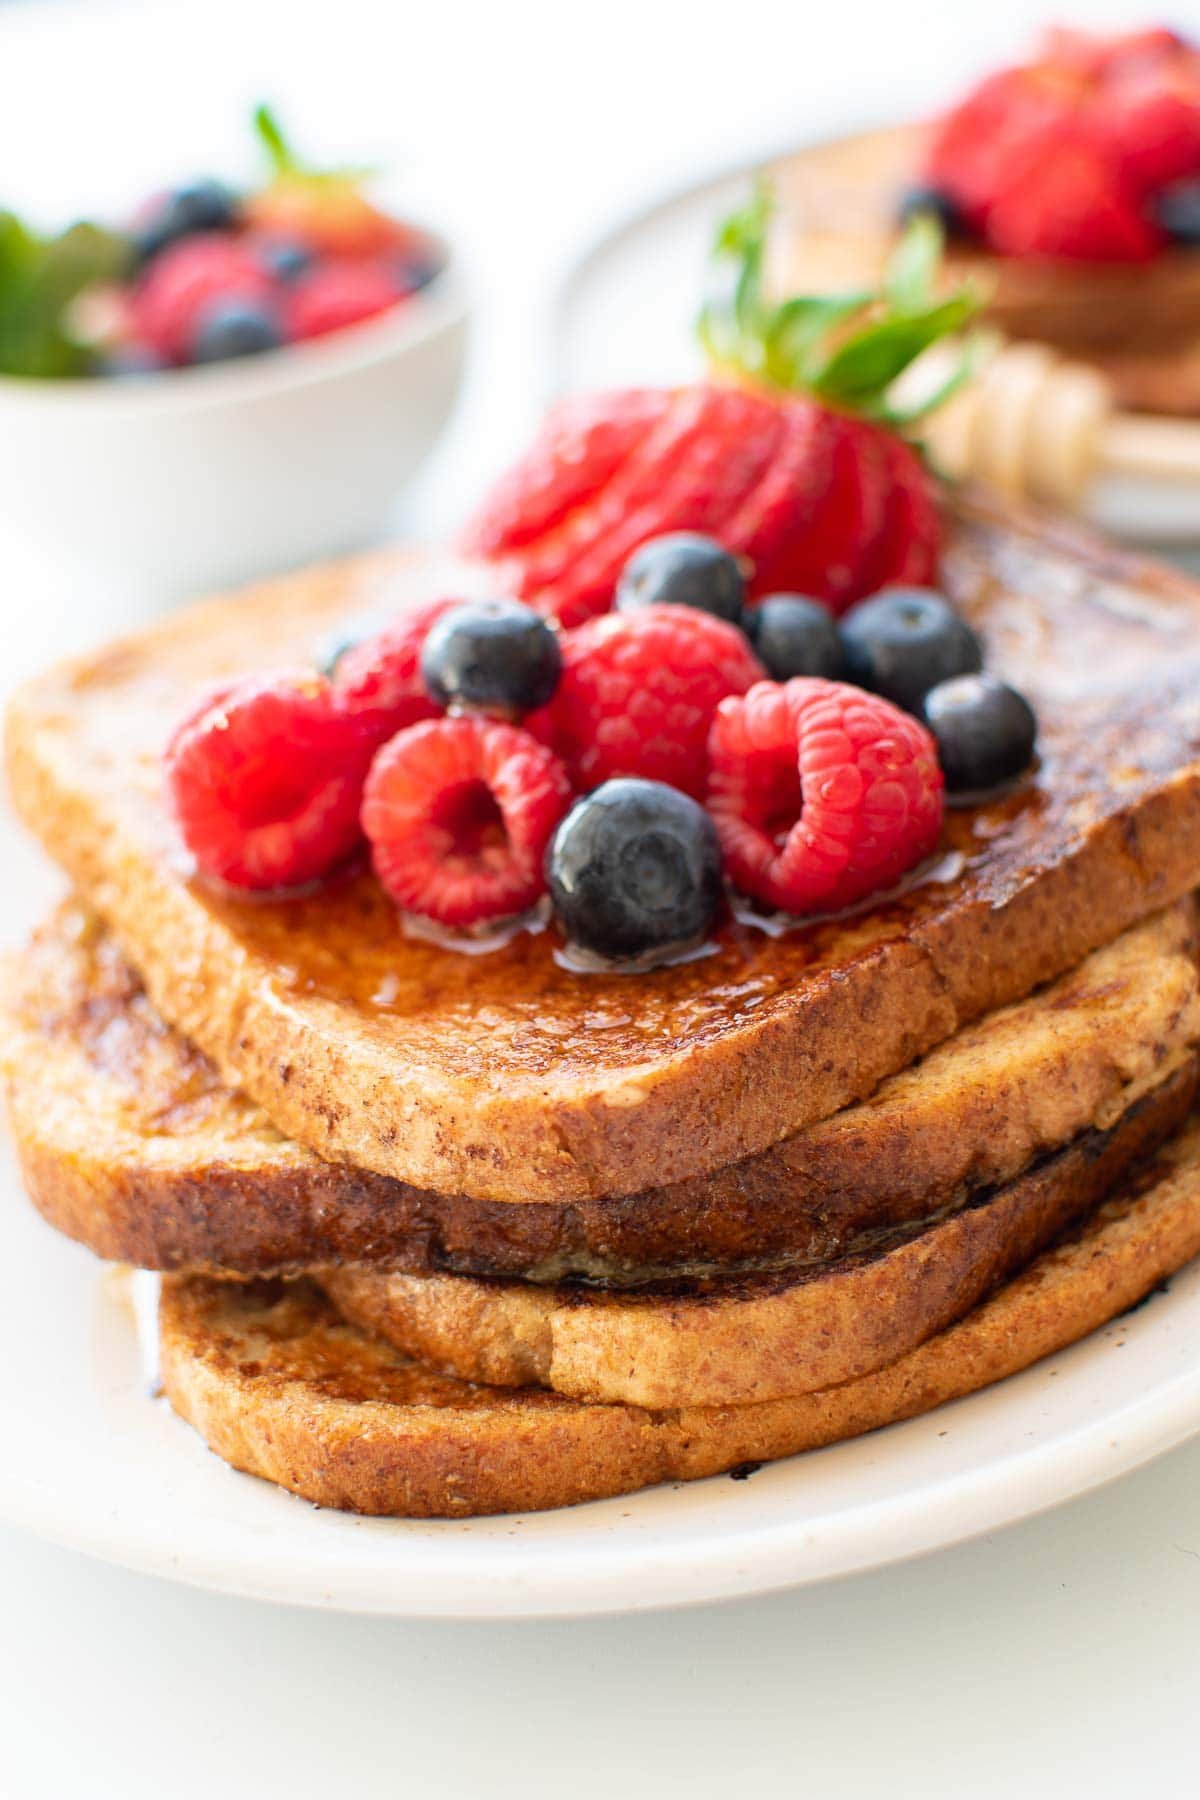 Close up of a stack of French toast with raspberries and blueberries.